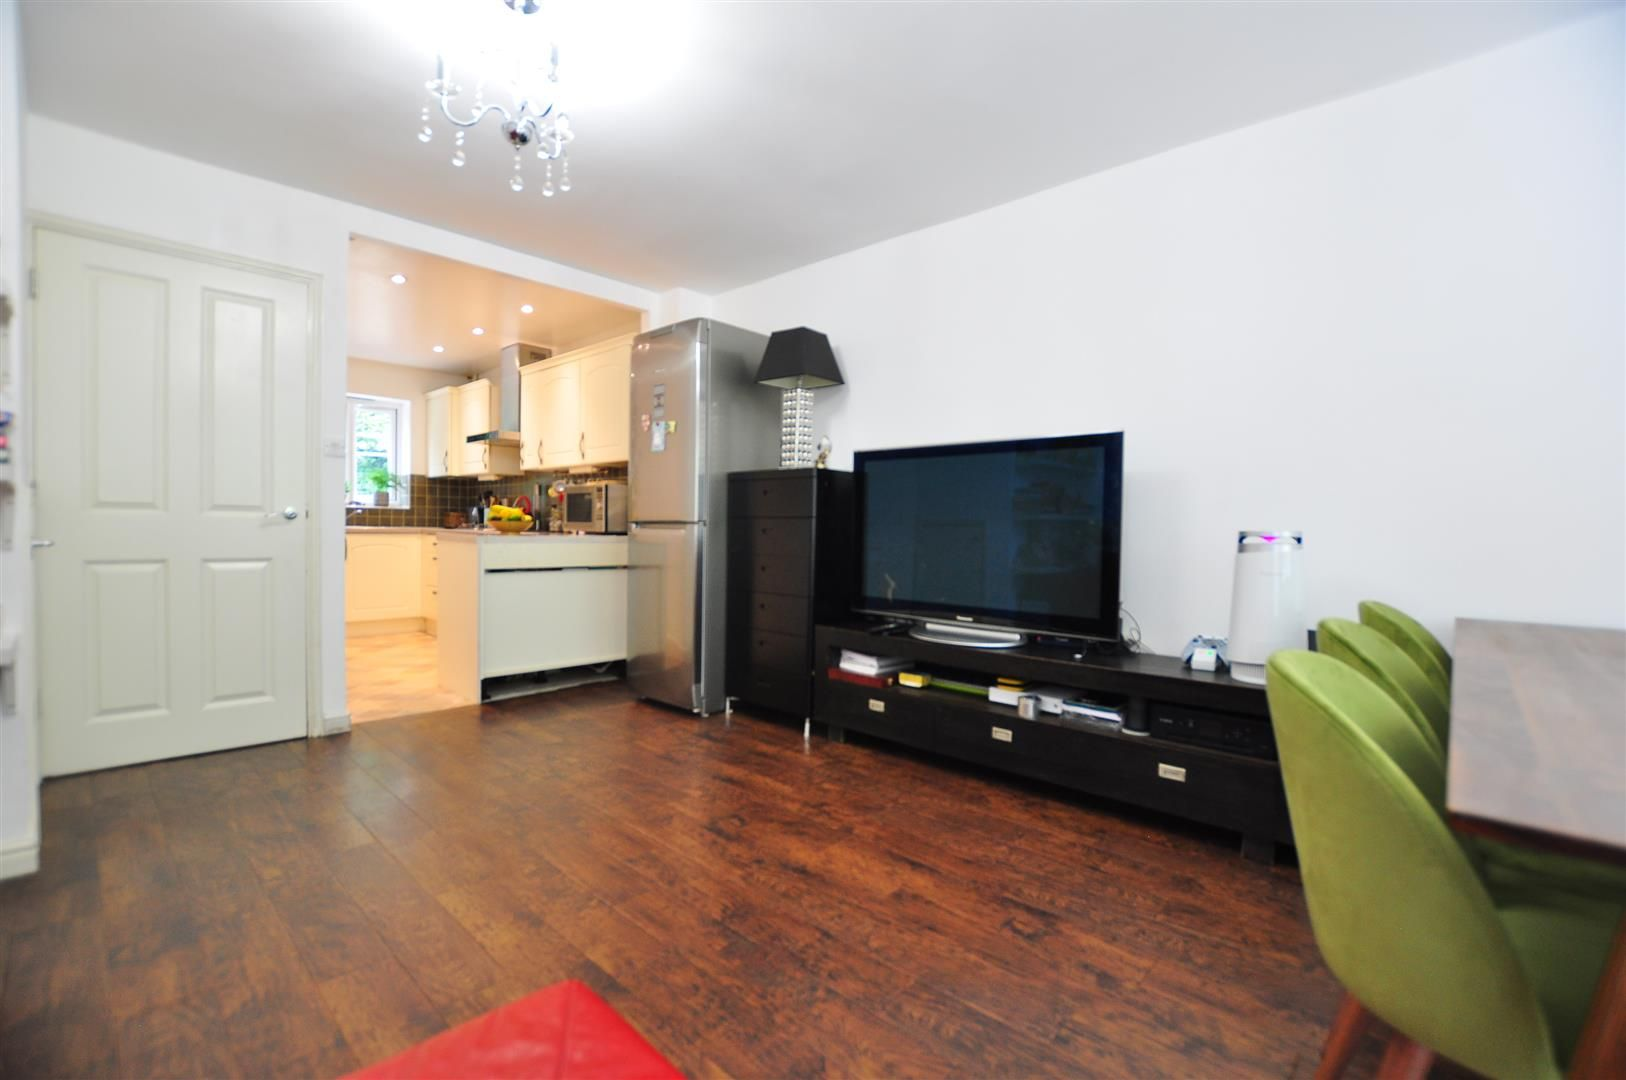 4 bed end-of-terrace for sale 4